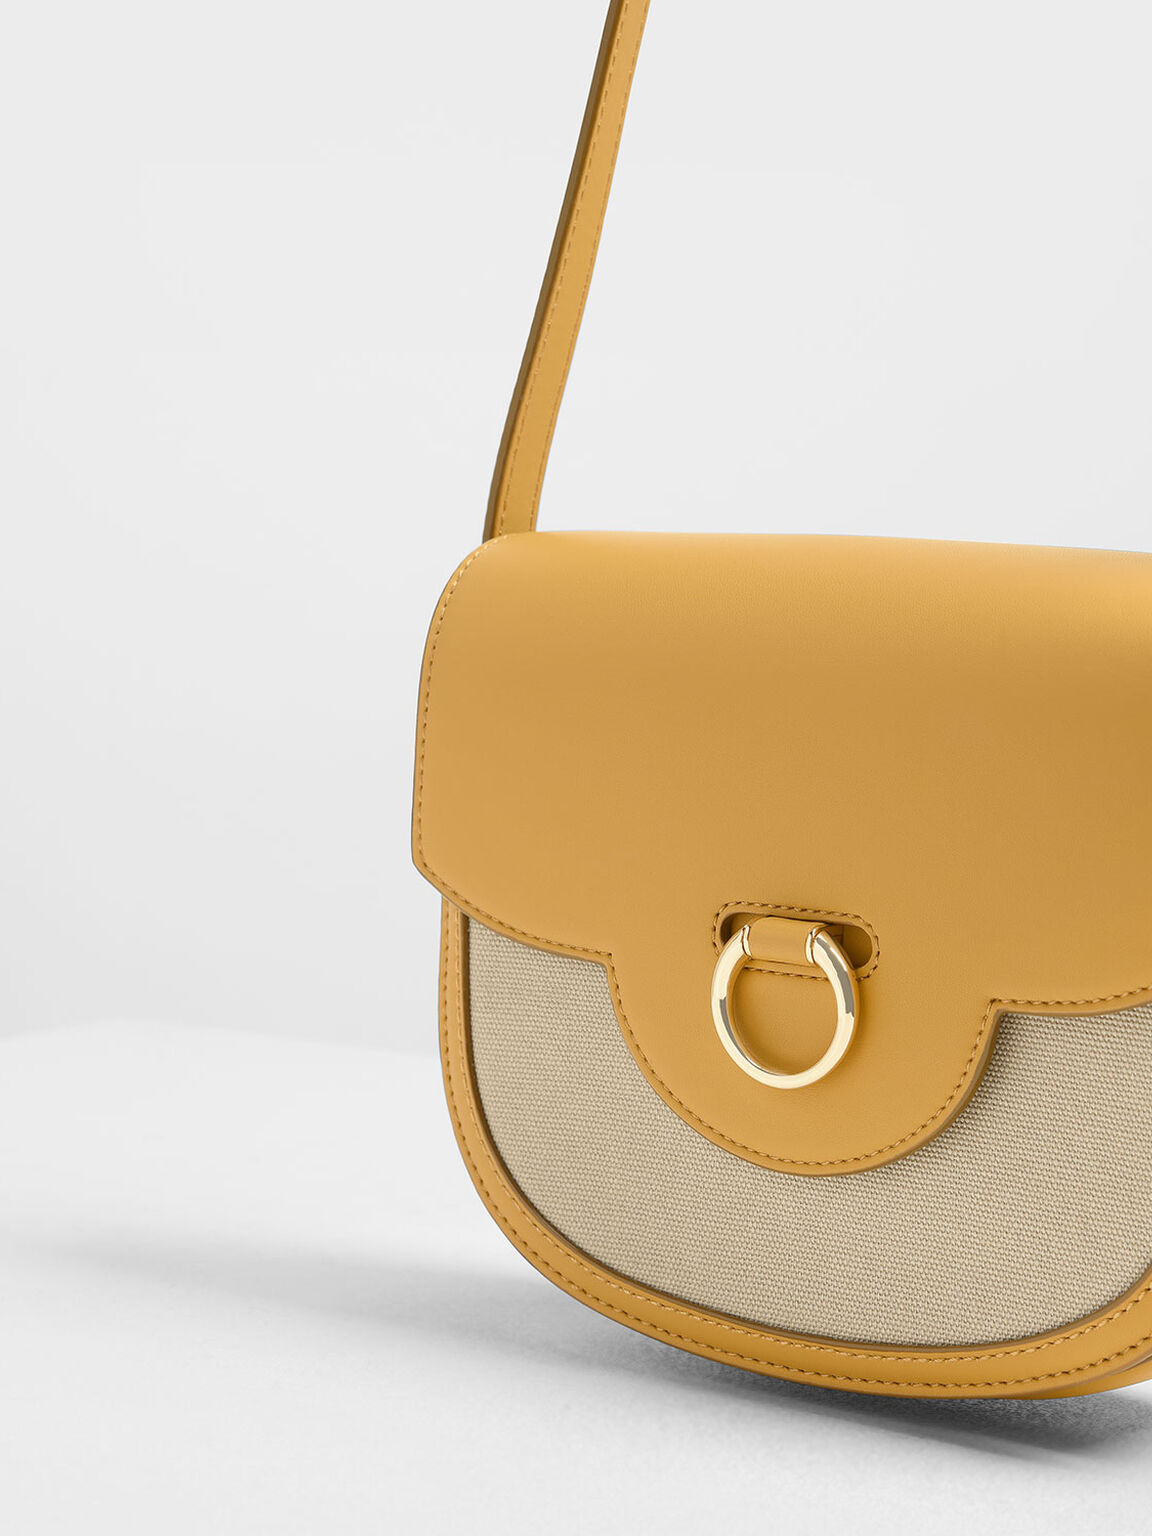 Ring Buckle Saddle Crossbody Bag, Mustard, hi-res